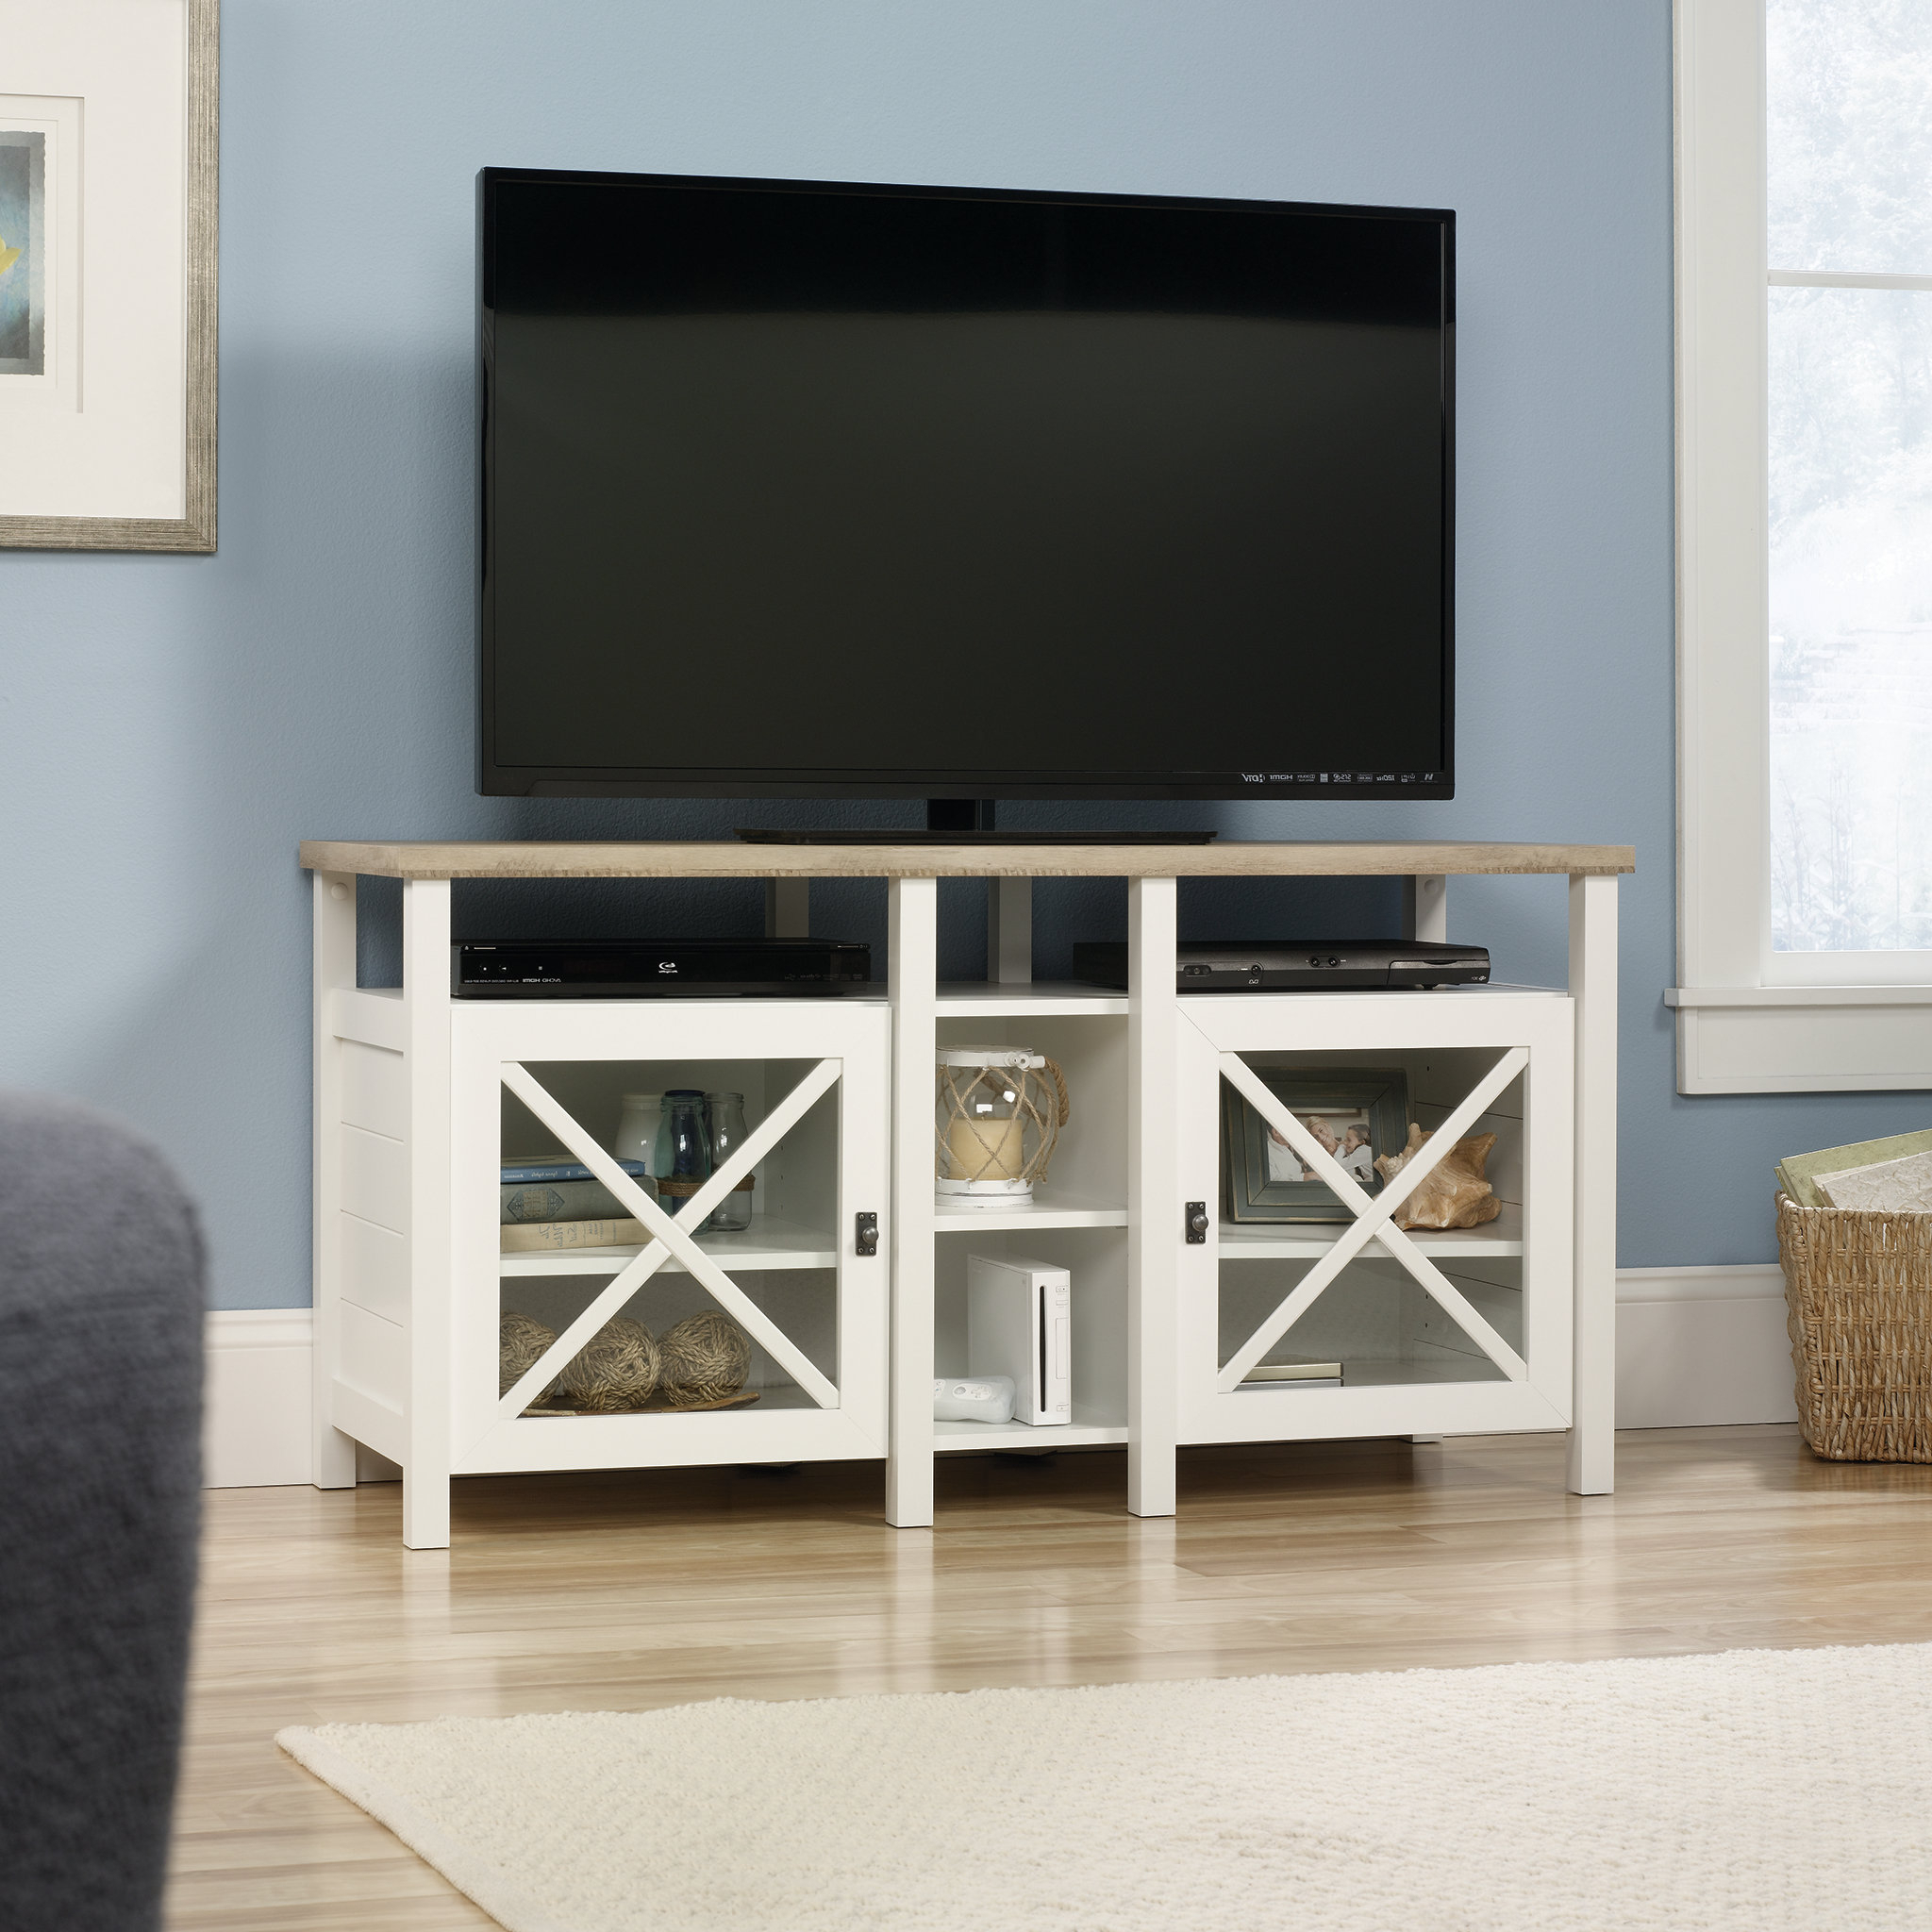 "Farmhouse & Rustic Beige Tv Stands | Birch Lane Throughout Colefax Vintage Tv Stands For Tvs Up To 78"" (View 19 of 20)"